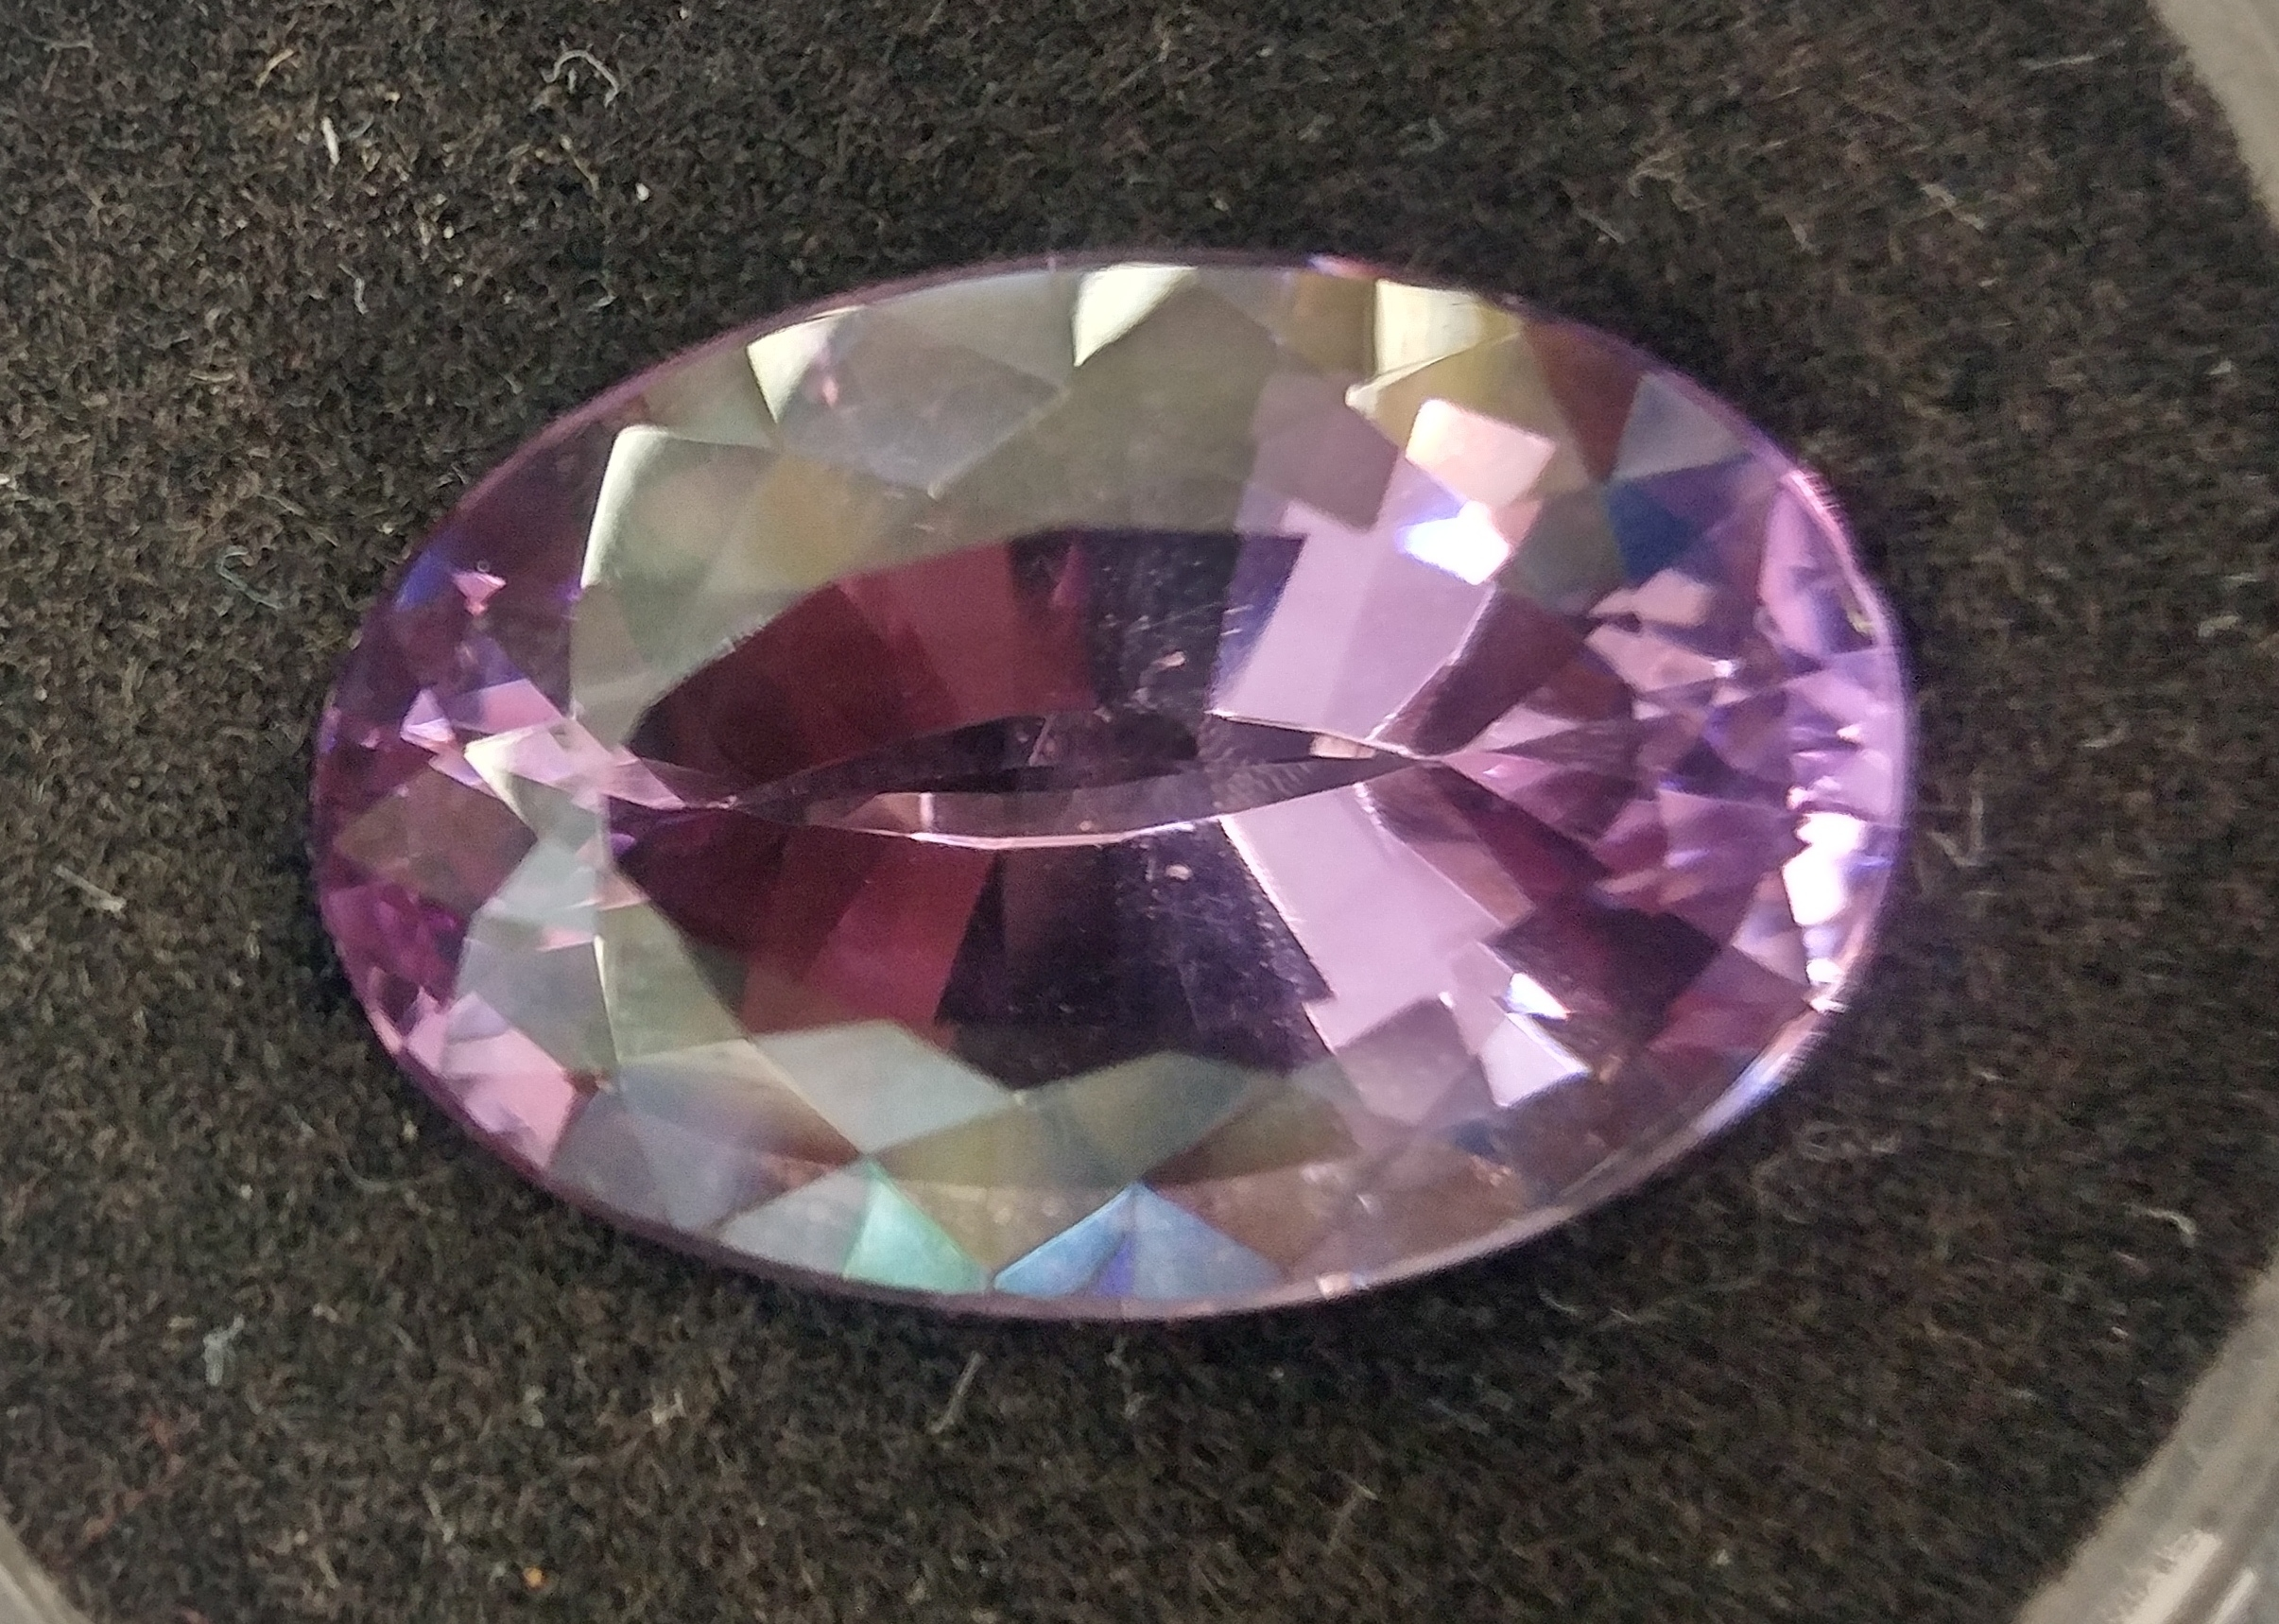 Amethyst Faceted Oval Cut Gemstone - 22.73 Carats